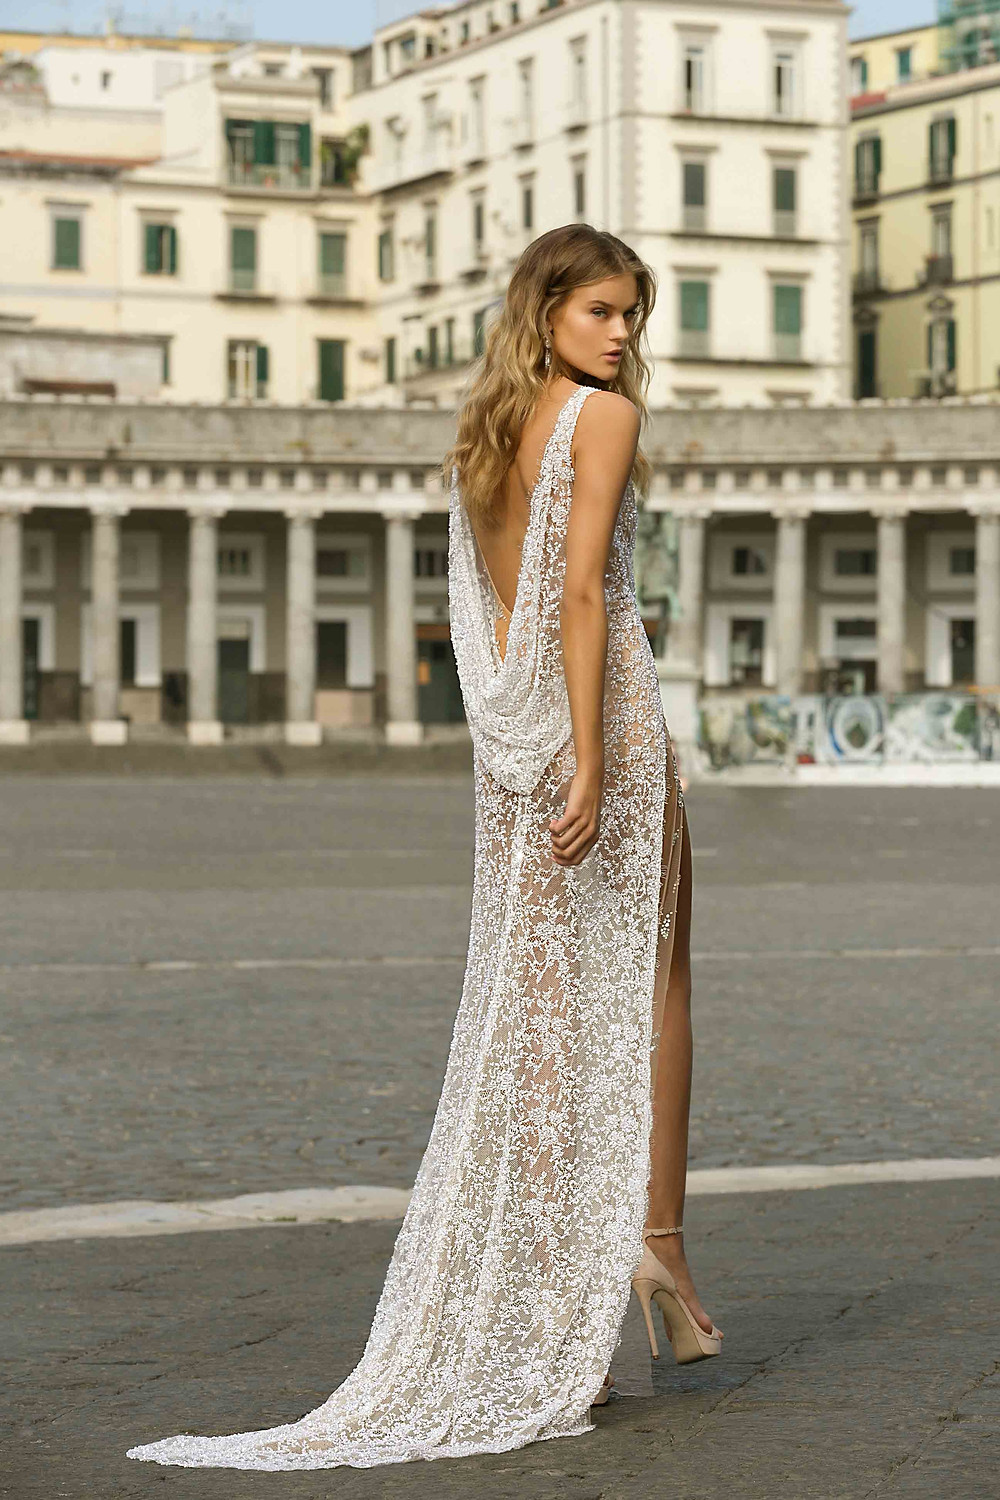 A lace wedding dress, with a high slit, long train and a cowl back